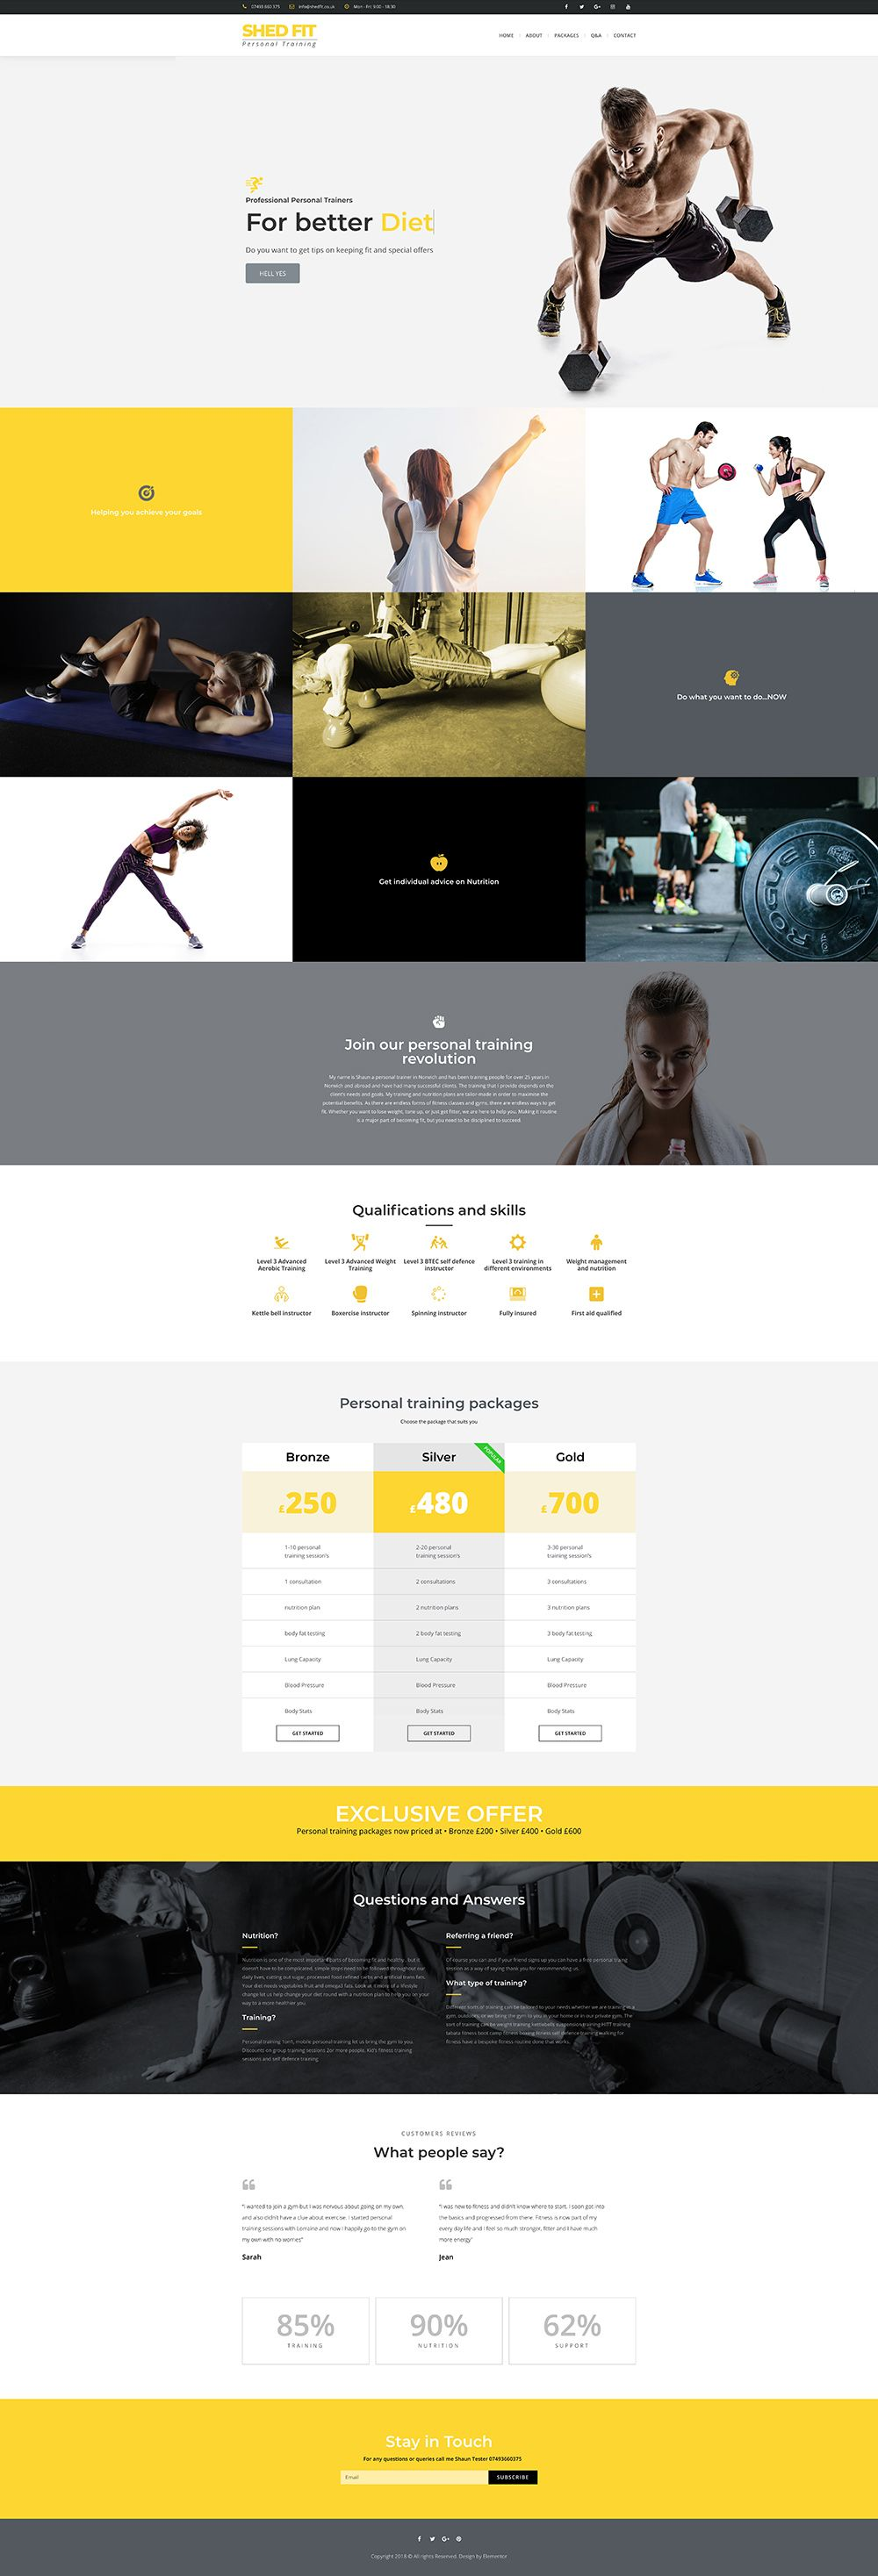 Website And App Design Wordpress Landing Page For Personal Trainer See It Live Www Shedfit Co Uk Personal Trainer Website Web Design Website Inspiration